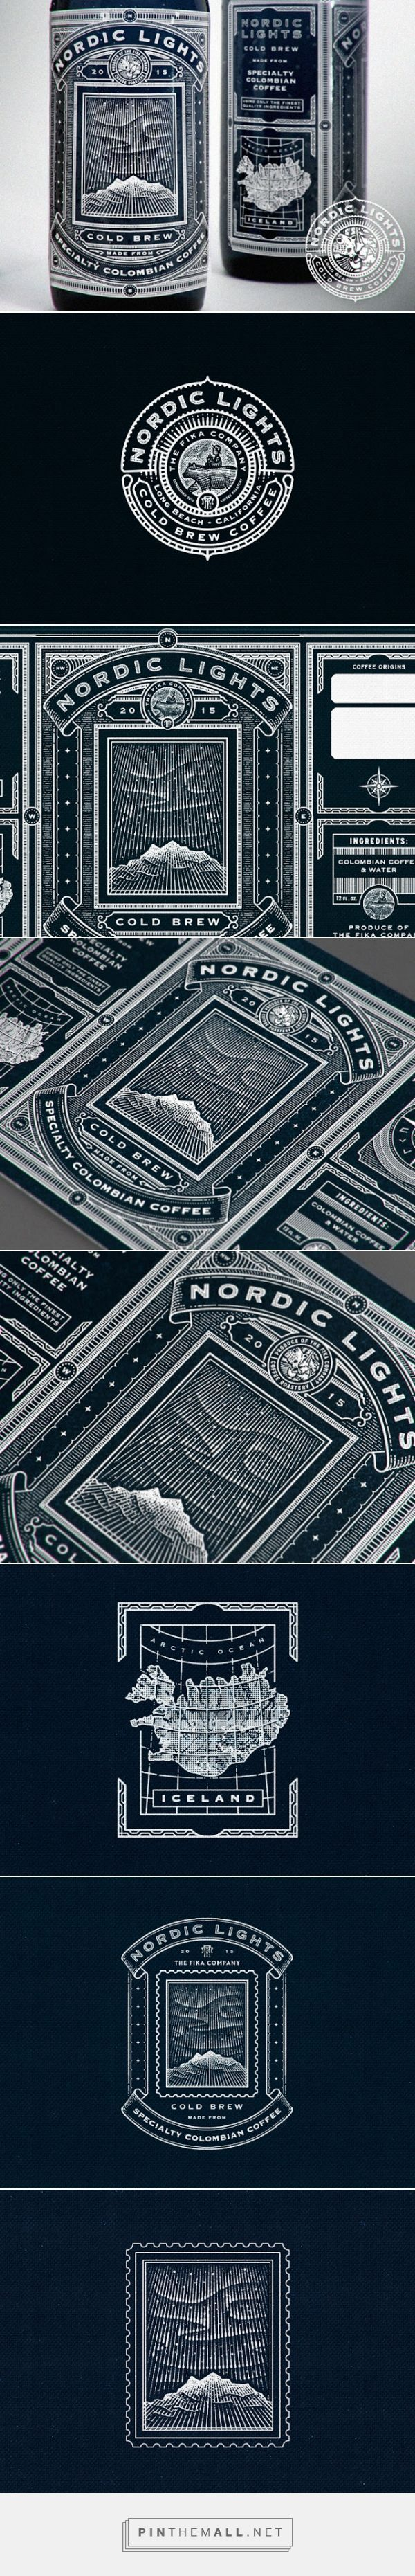 Nordic Lights Coffee packaging designed by Ye Olde Studio - created via https://pinthemall.net